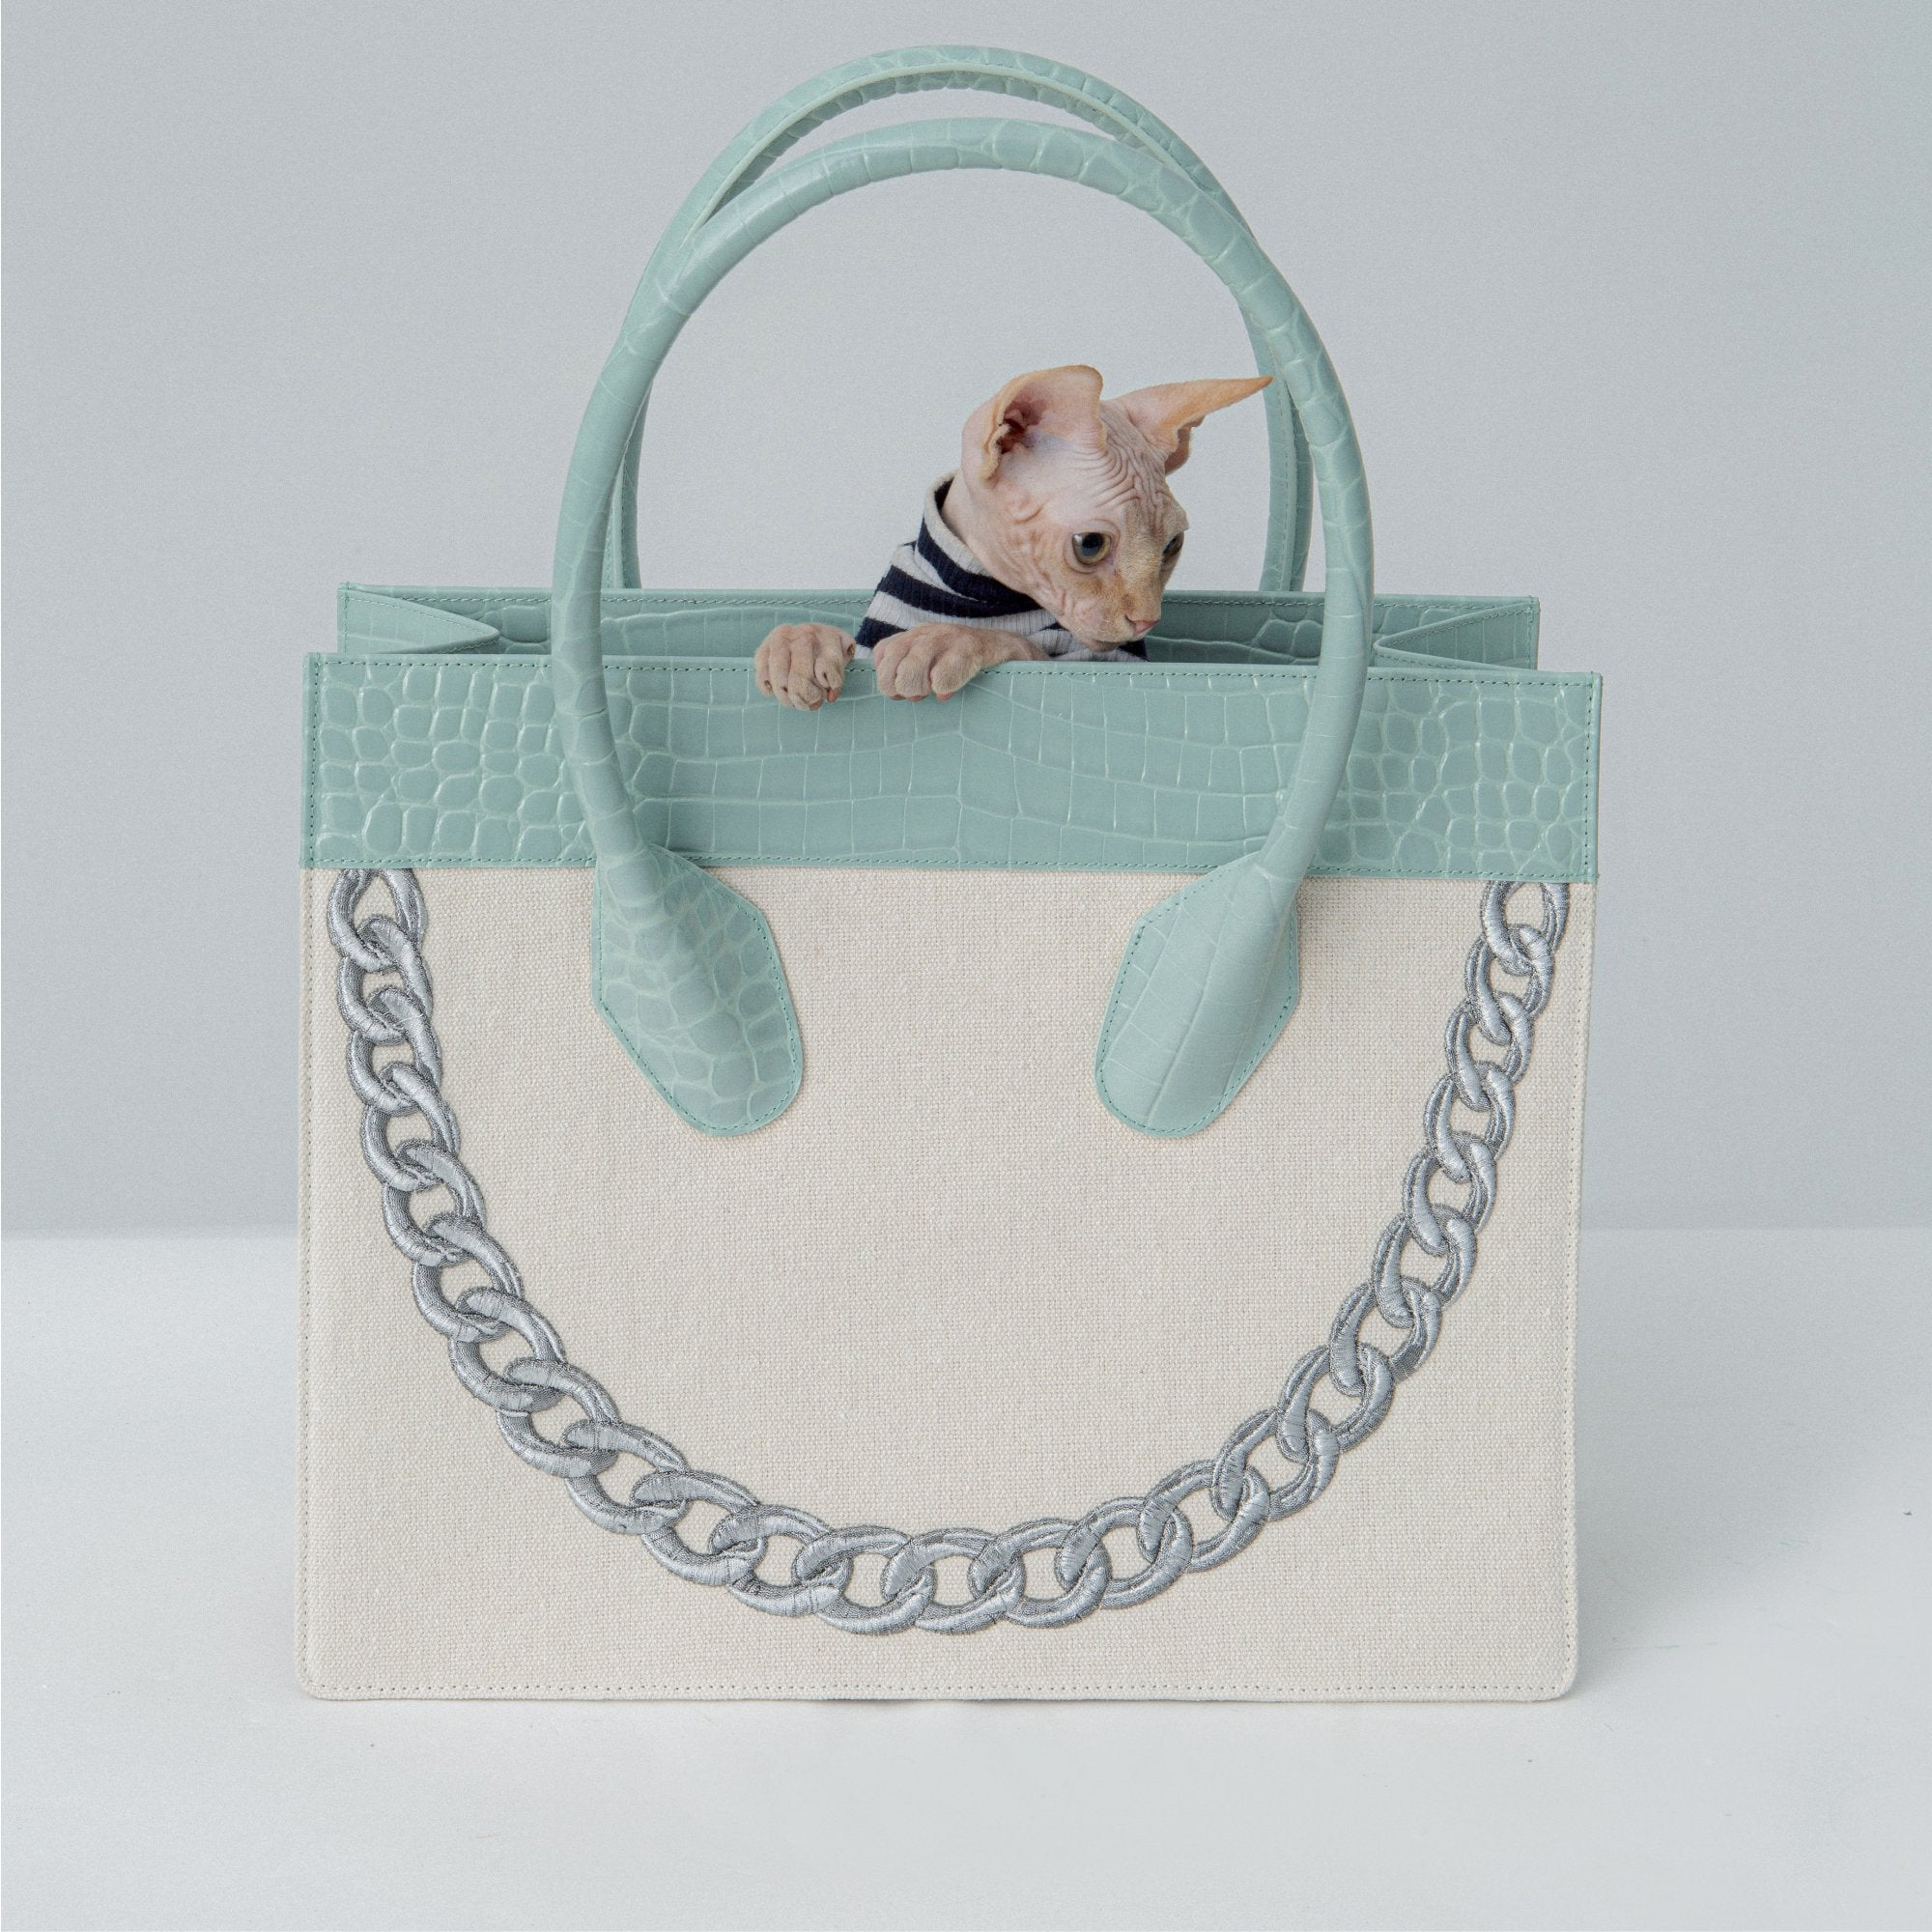 APEDE MOD Smiley Tote Green | MADA IN CHINA